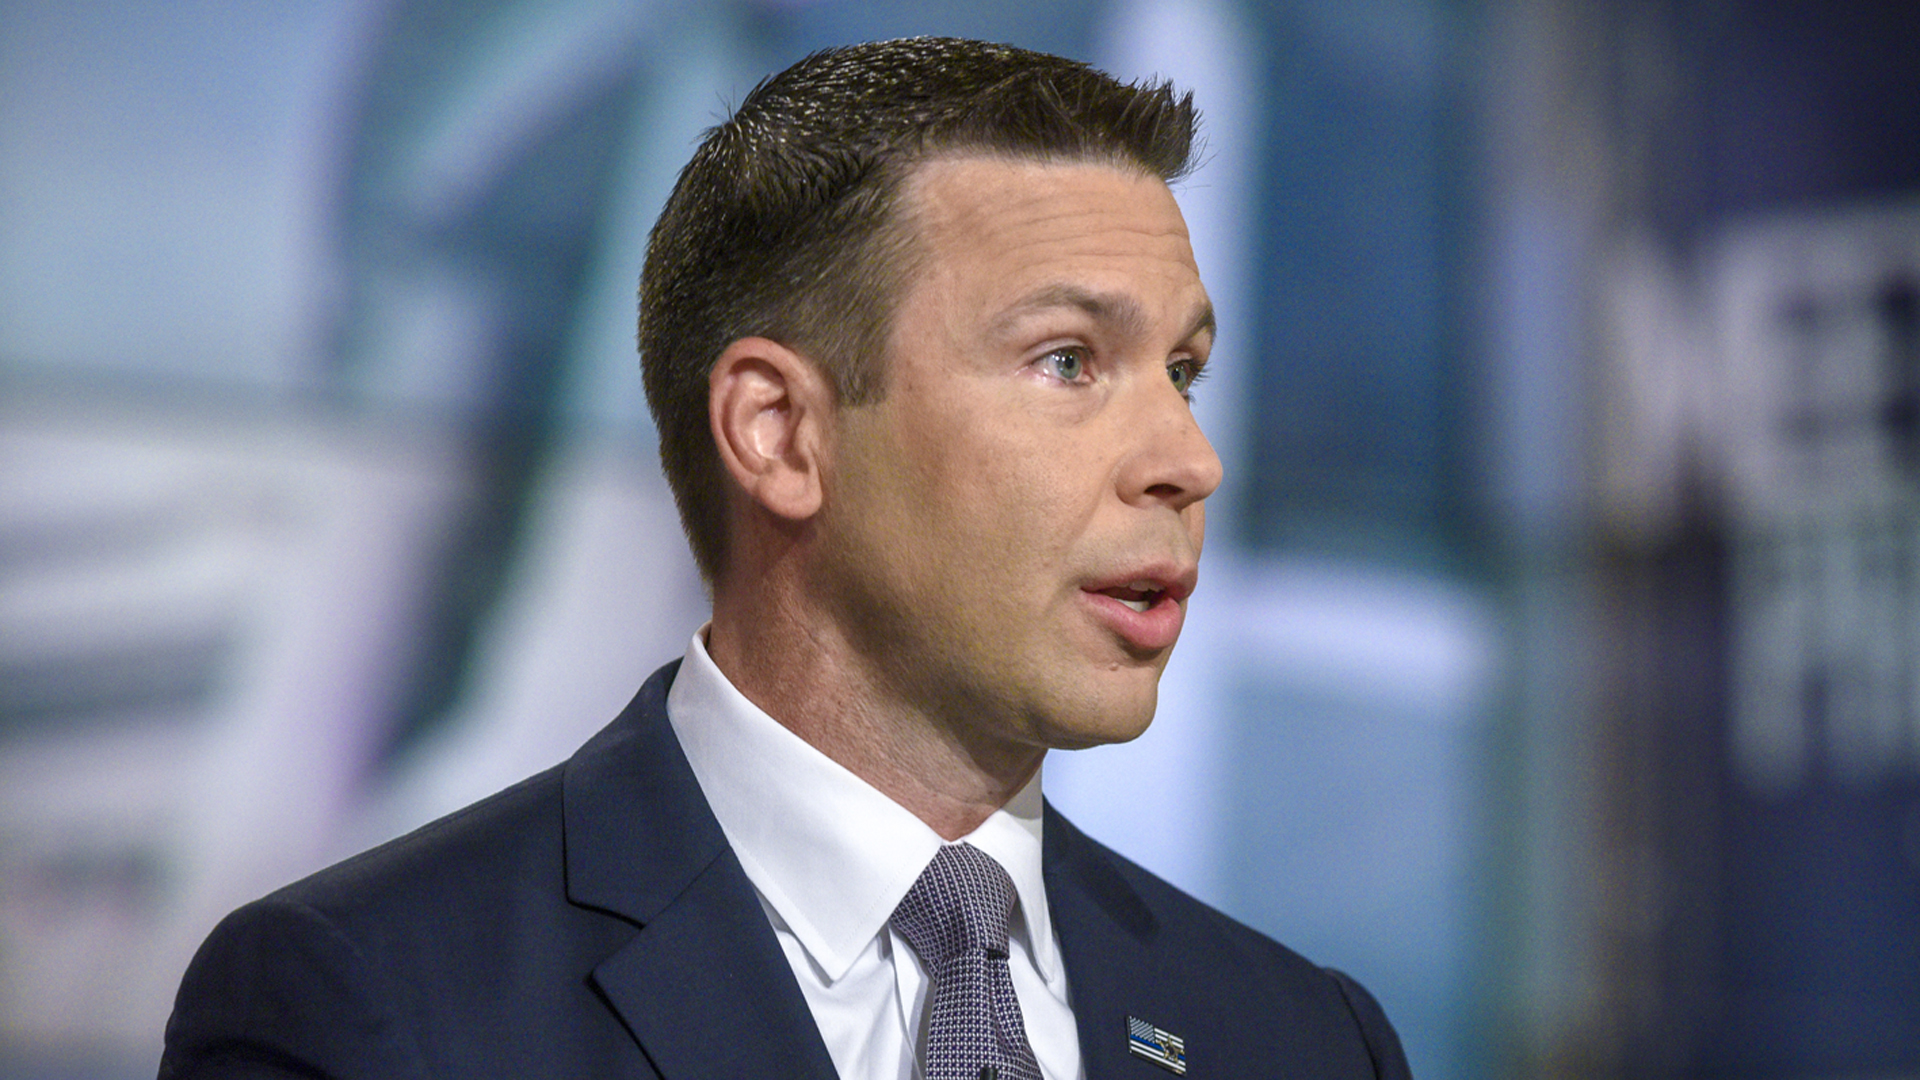 """Acting Secretary of Homeland Security Kevin McAleenan appears on """"Meet the Press"""" in Washington, D.C., on Aug. 11, 2019. (Credit: William B. Plowman/NBC/NBC NewsWire via Getty Images)"""